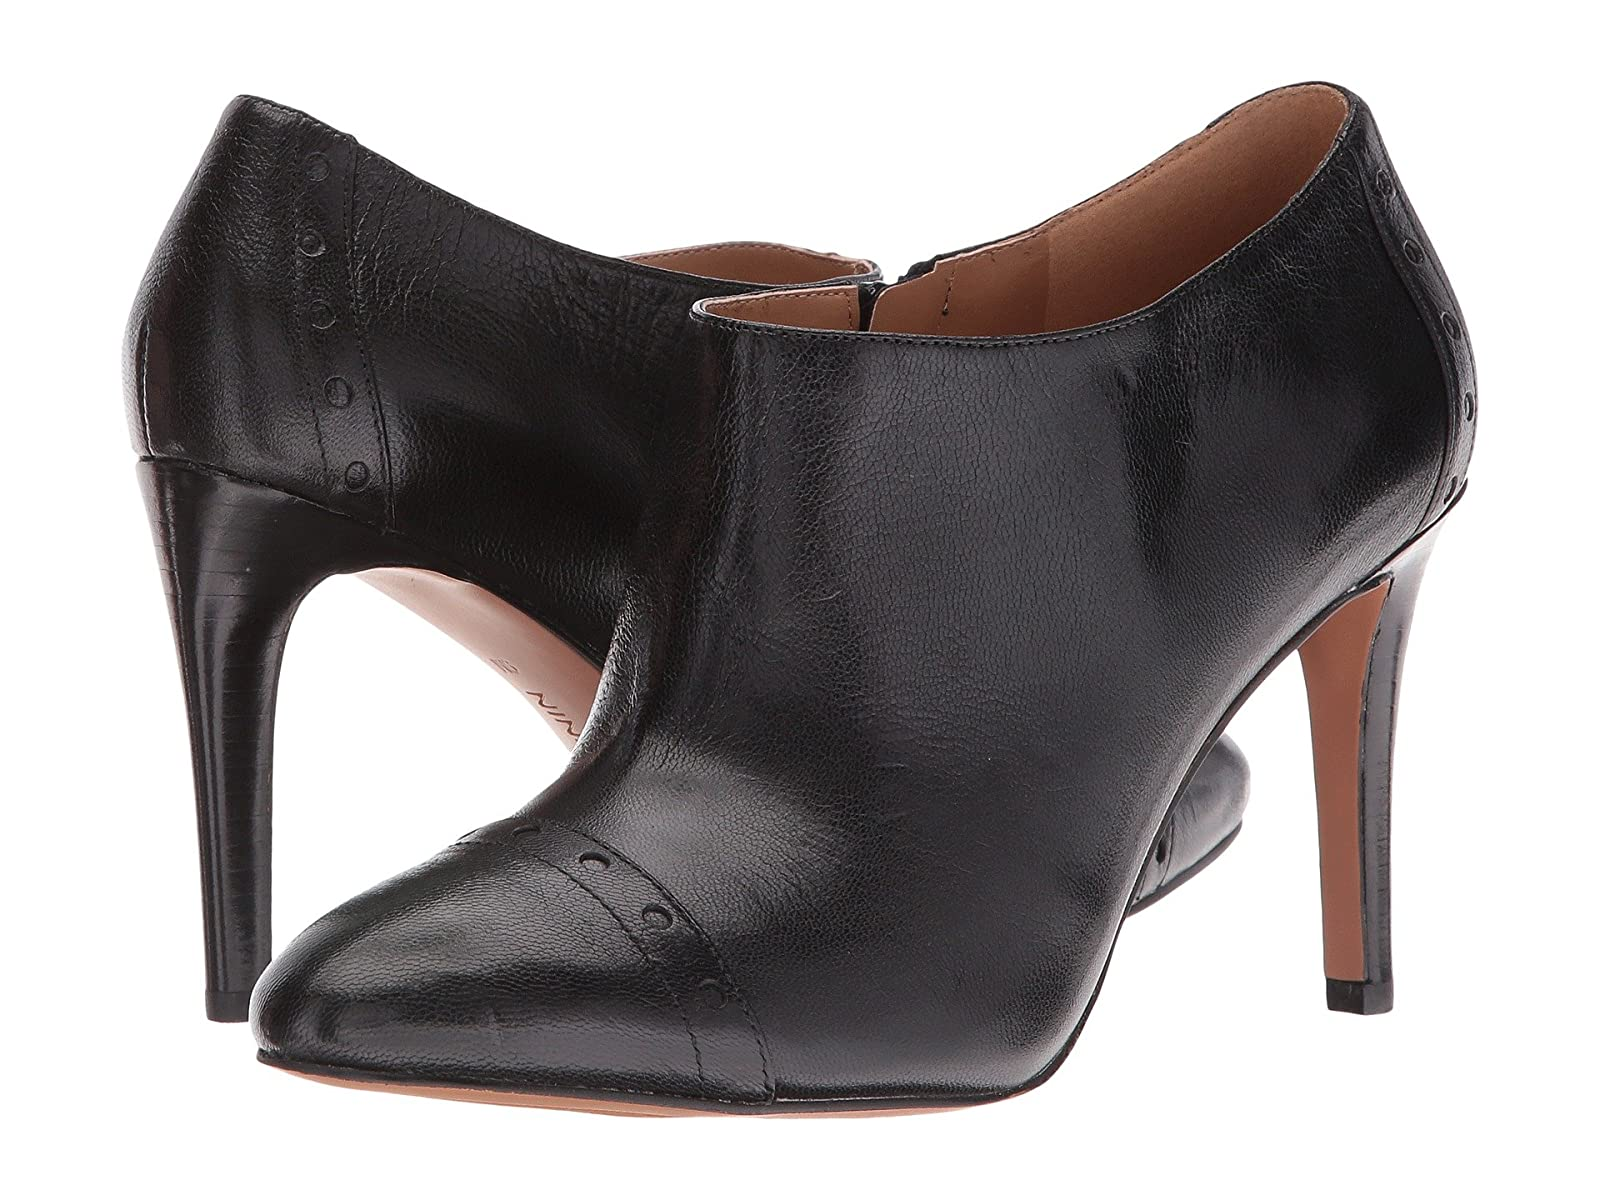 Nine West PhyllisCheap and distinctive eye-catching shoes